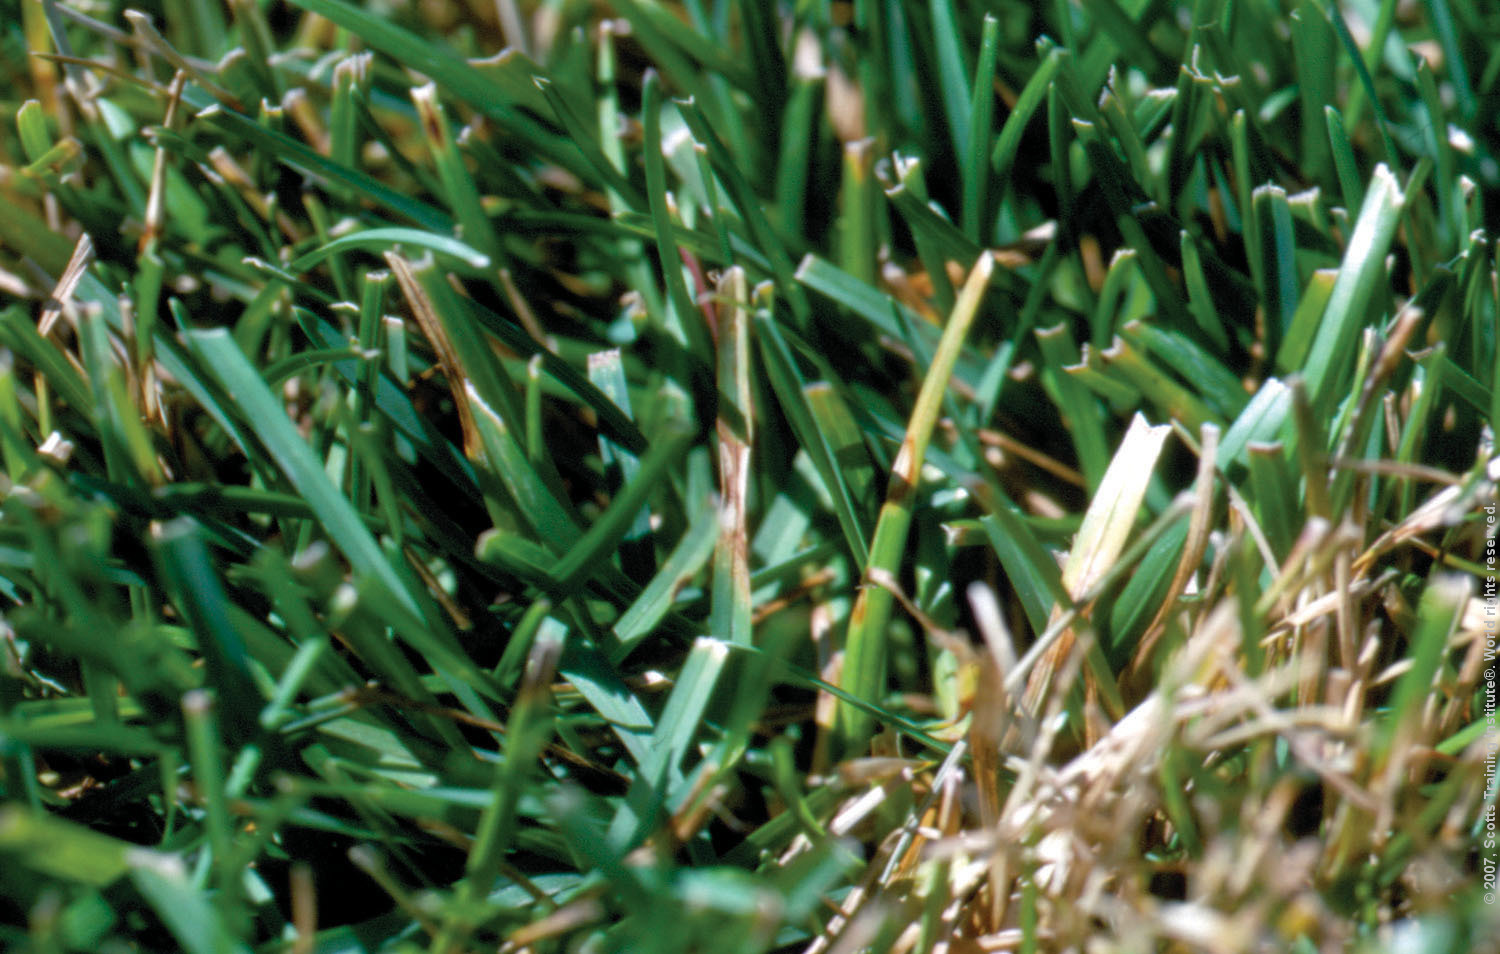 How To Repair a Bare Patch in Your Lawn - The Spruce